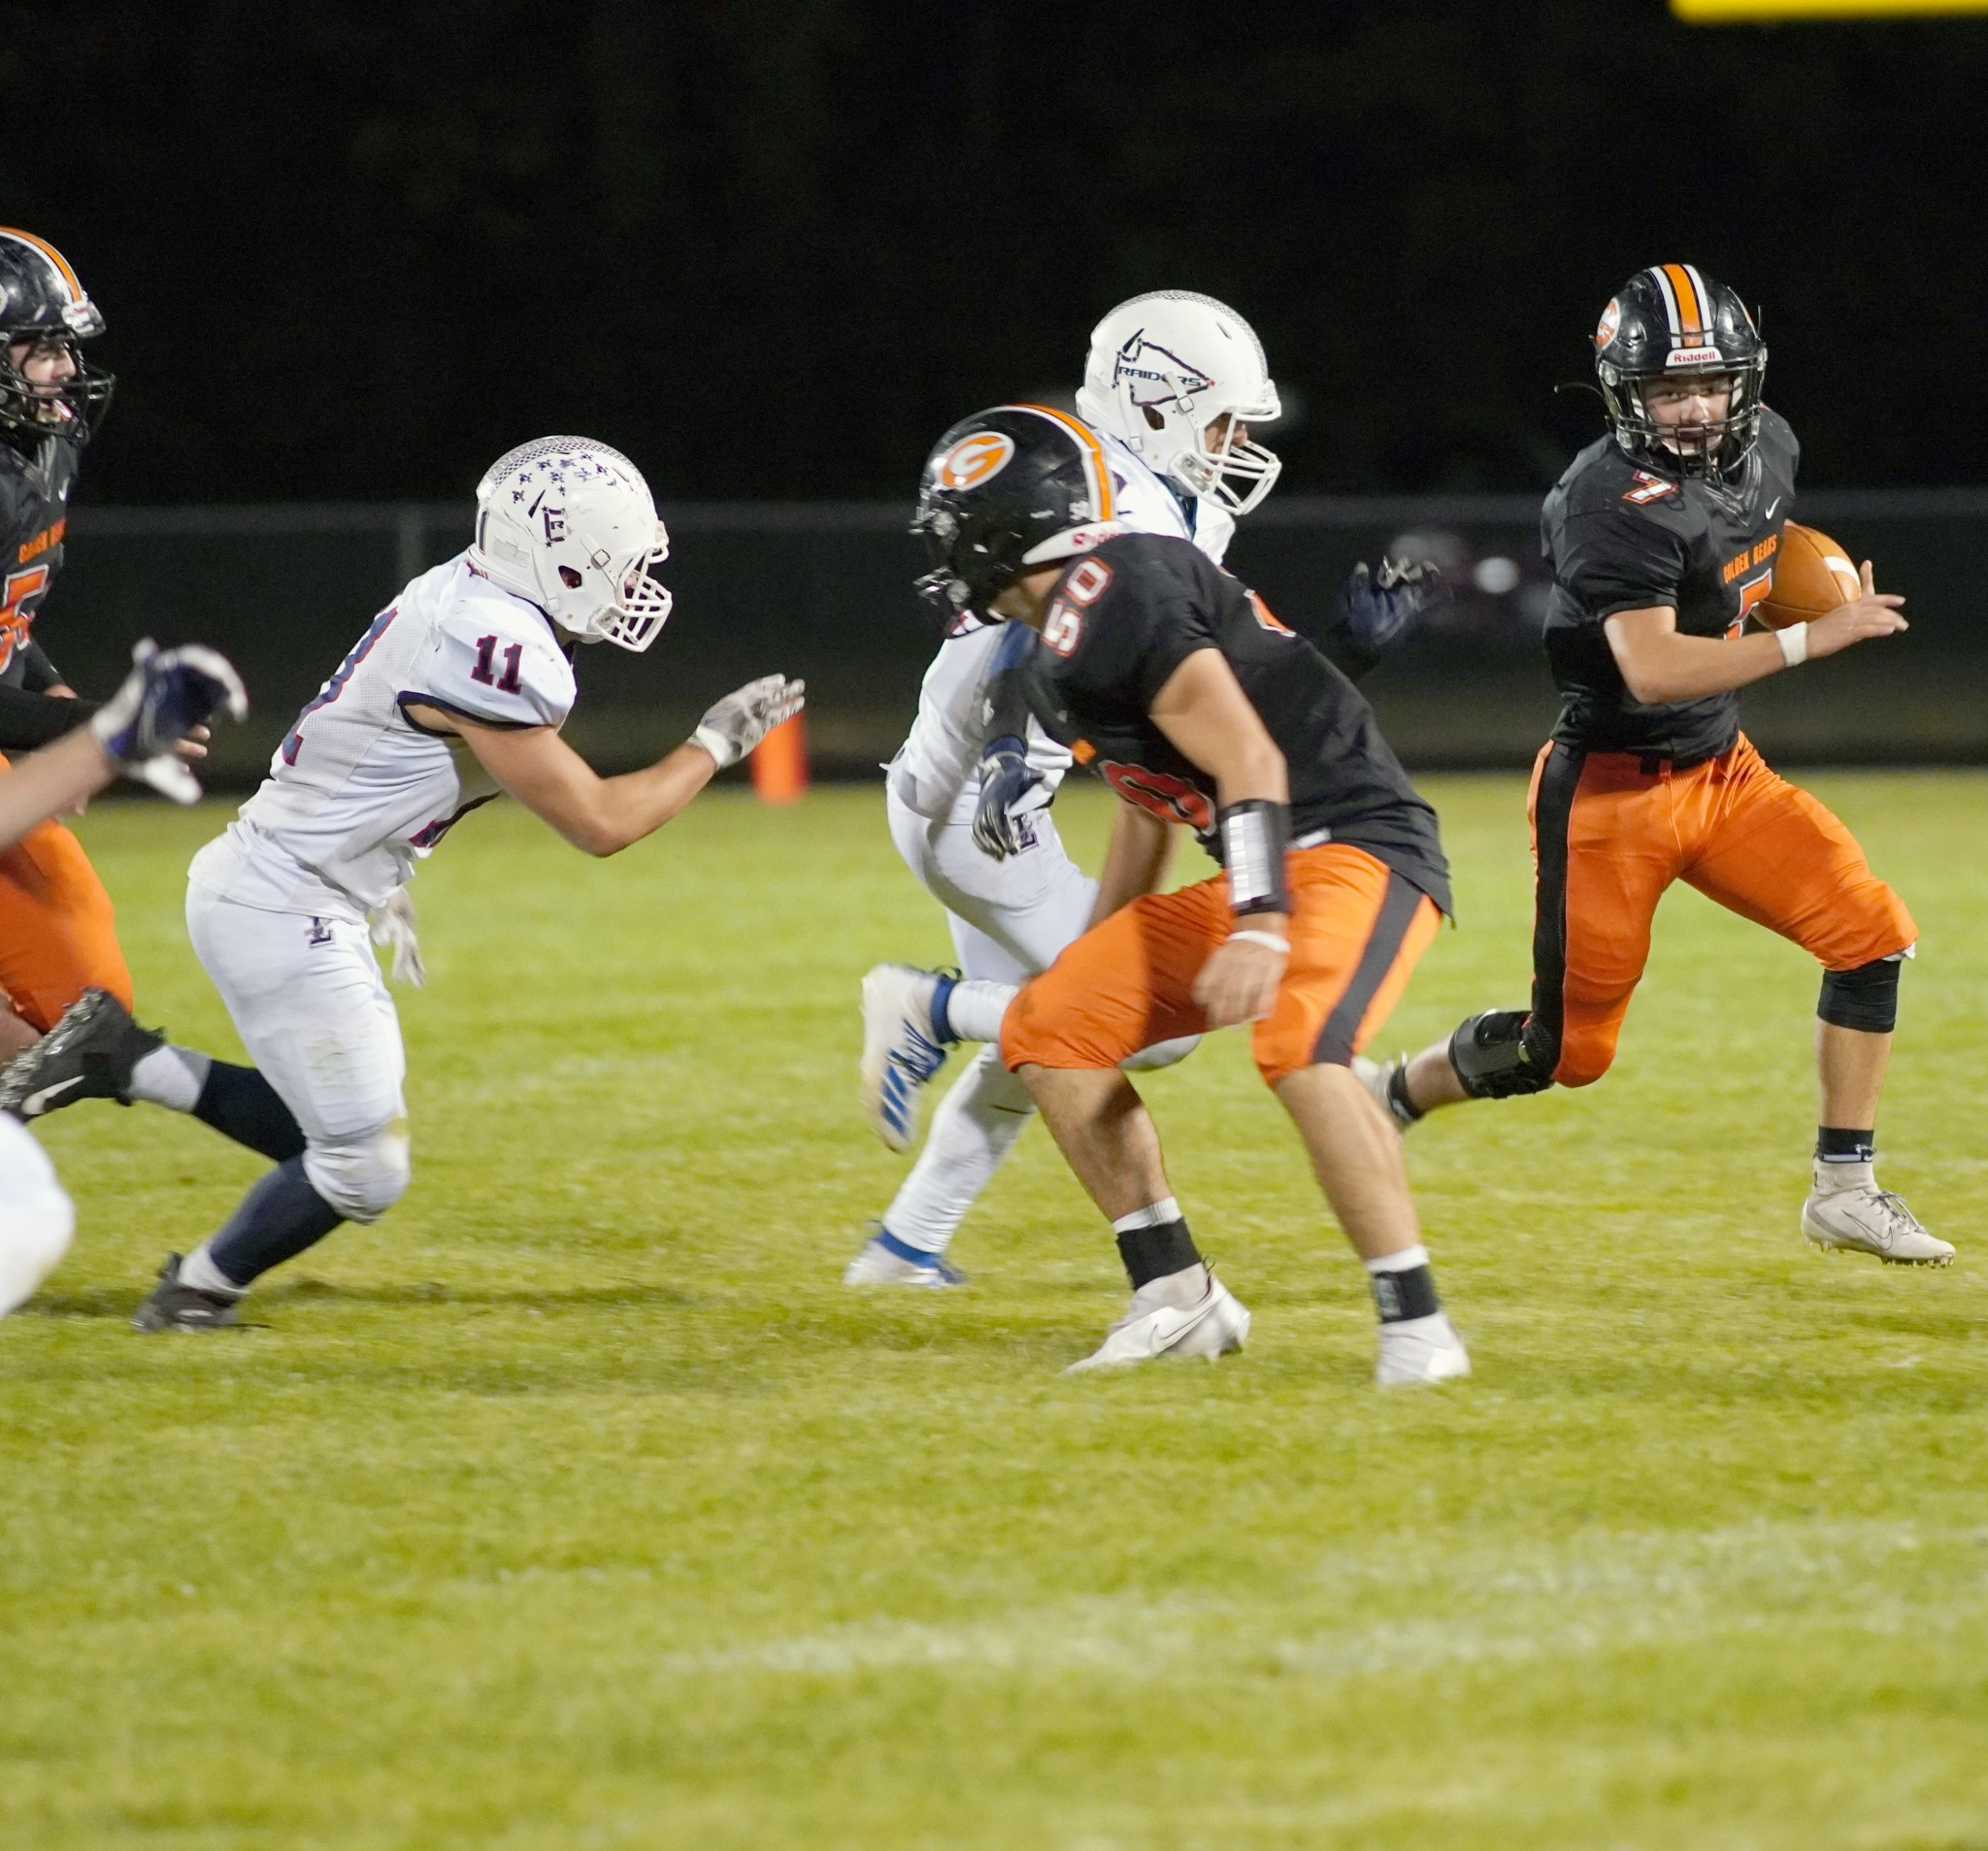 Gibsonburg junior Tyler Schooley (50), a 5-foot-11, 195-pound offensive guard, looks to block an opposing defender so senior halfback Phillip Davies (7) can find running room. (Photo by Jeff Holcomb)